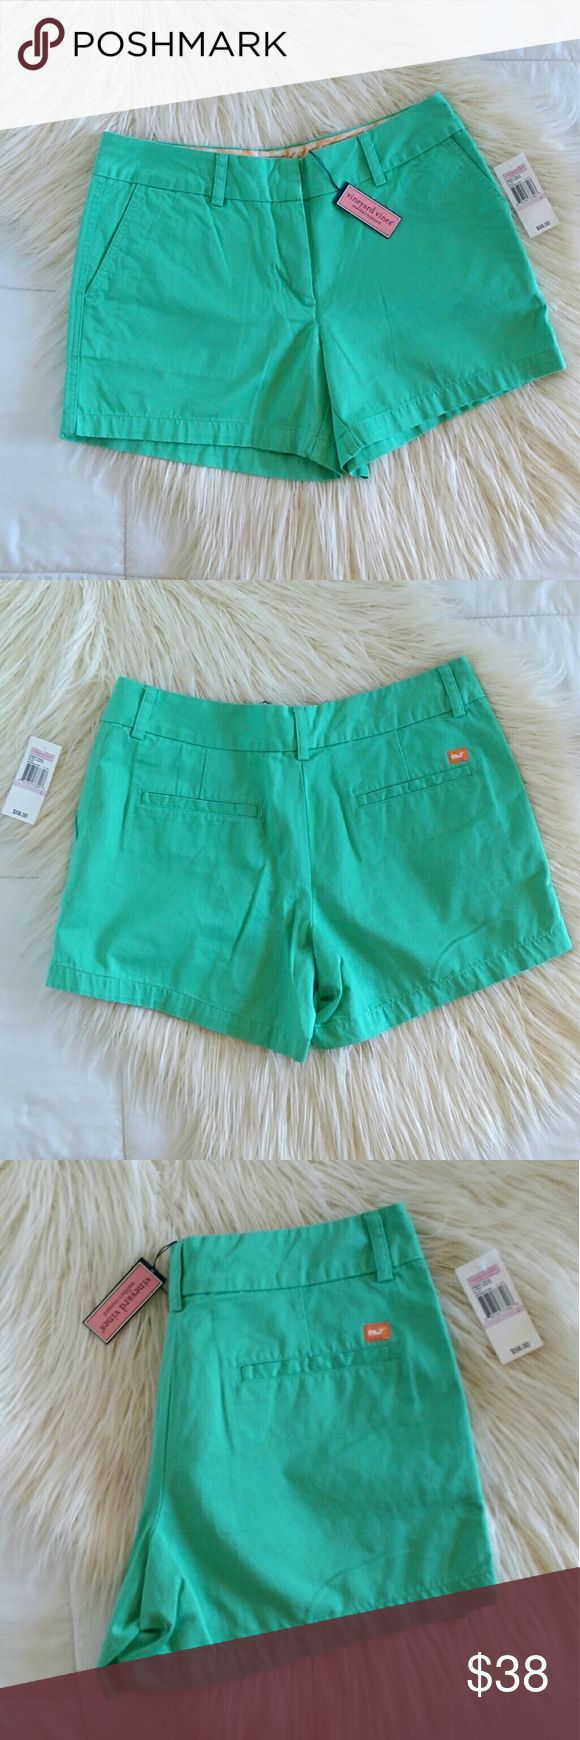 NWT Vineyard Vines Chino Mint Green Shorts Brand new Vineyard Vines mint green chino shorts. Super cute with pockets in front and faux pockets in back. Orange seashell designs inside. Waist measures 15' flat across. Length is 14'.   Excellent condition, new with tags.  Open to offers. No trades. No modeling. Vineyard Vines Shorts